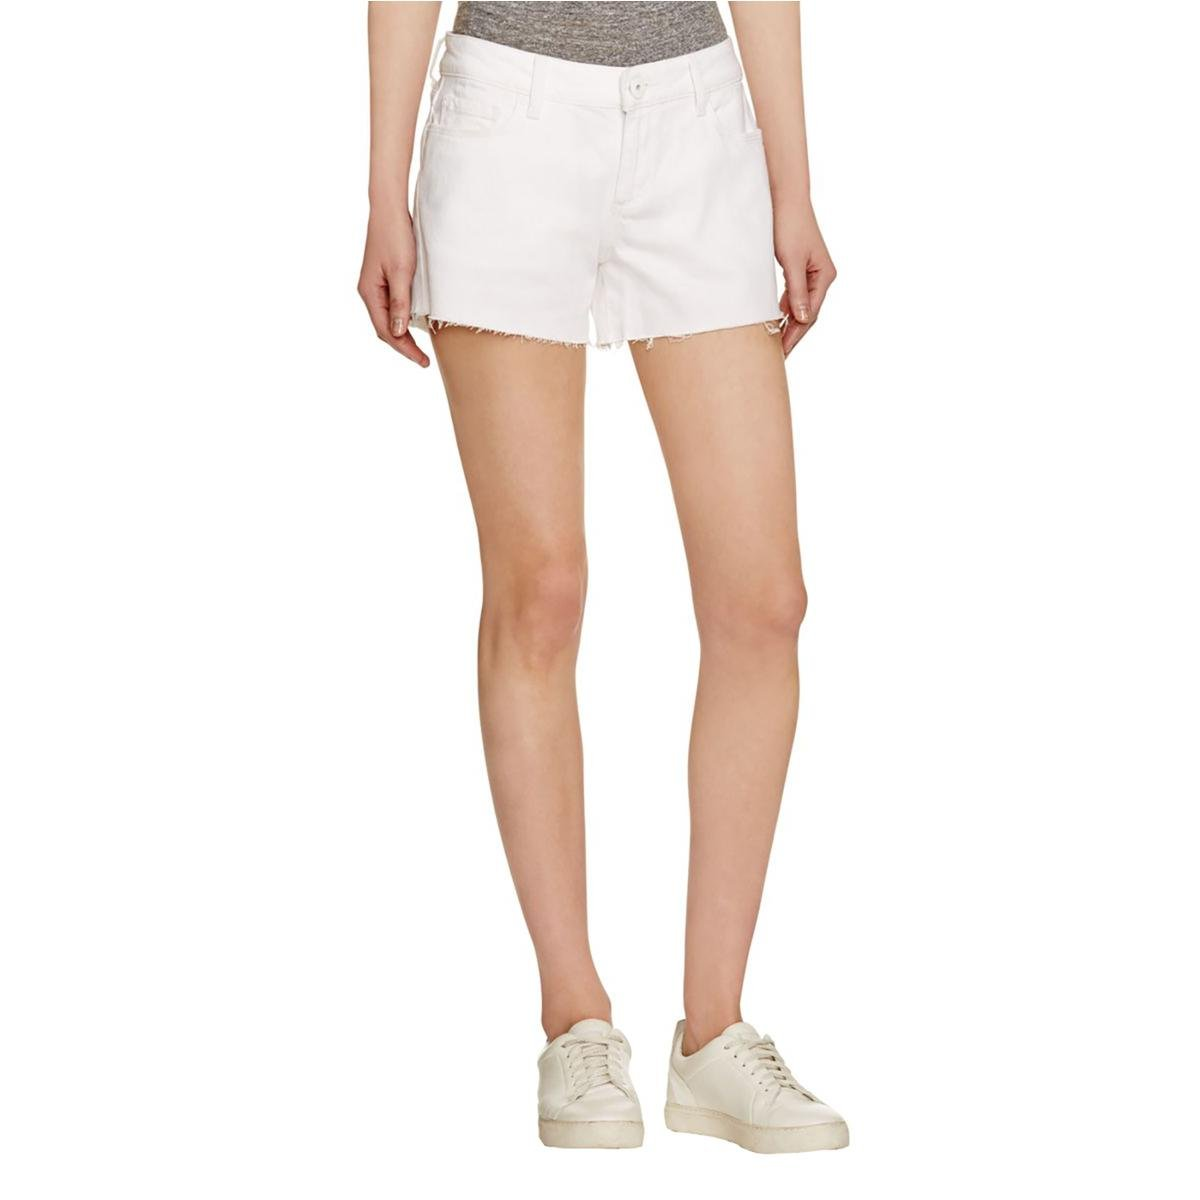 DL1961 Women's Renee Cutoff Shorts, Alpine, 29